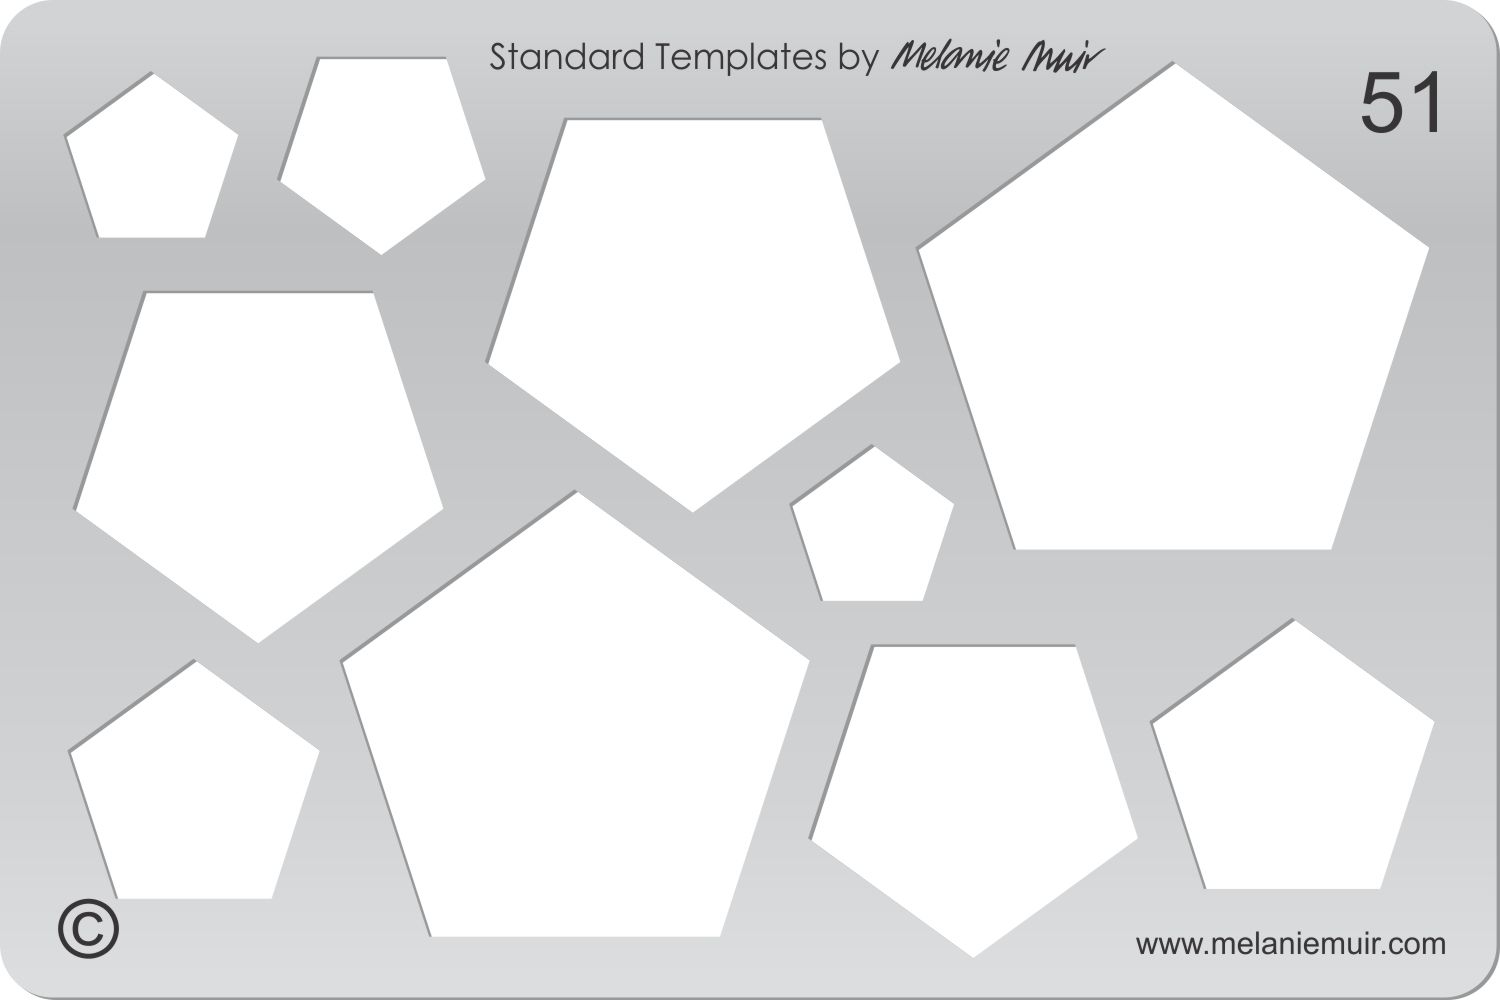 Acrylic template No. 51. Perfect for creating a wide variety of polymer, metal or clay bracelet, necklace, pendant and earring designs.